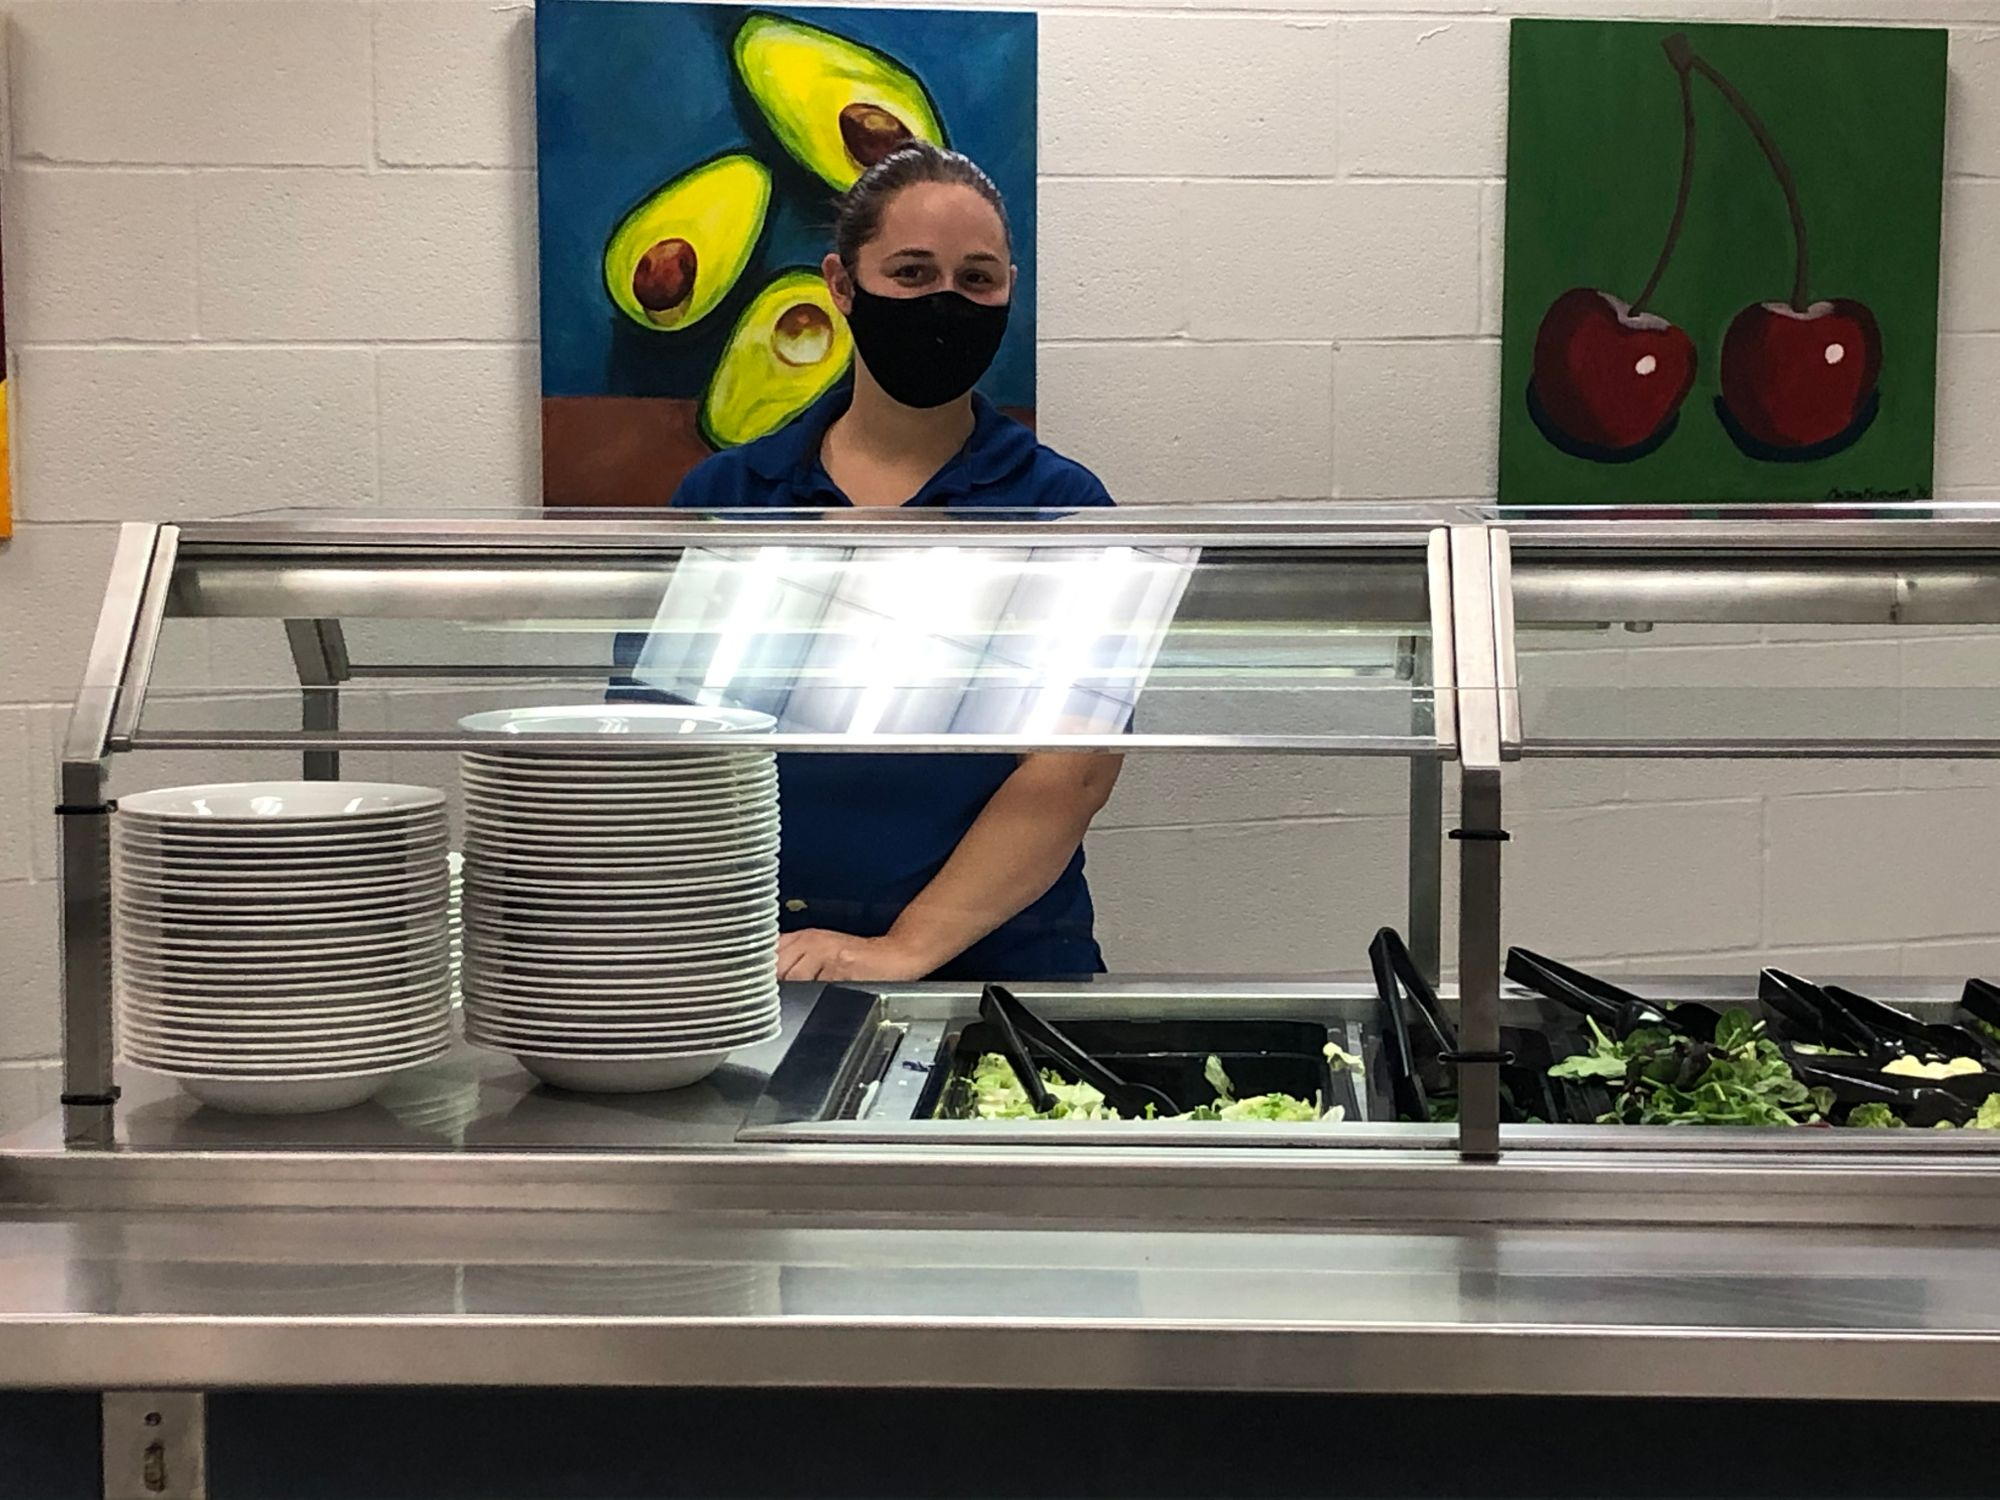 Salad bar in dining center now open, safety still top priority